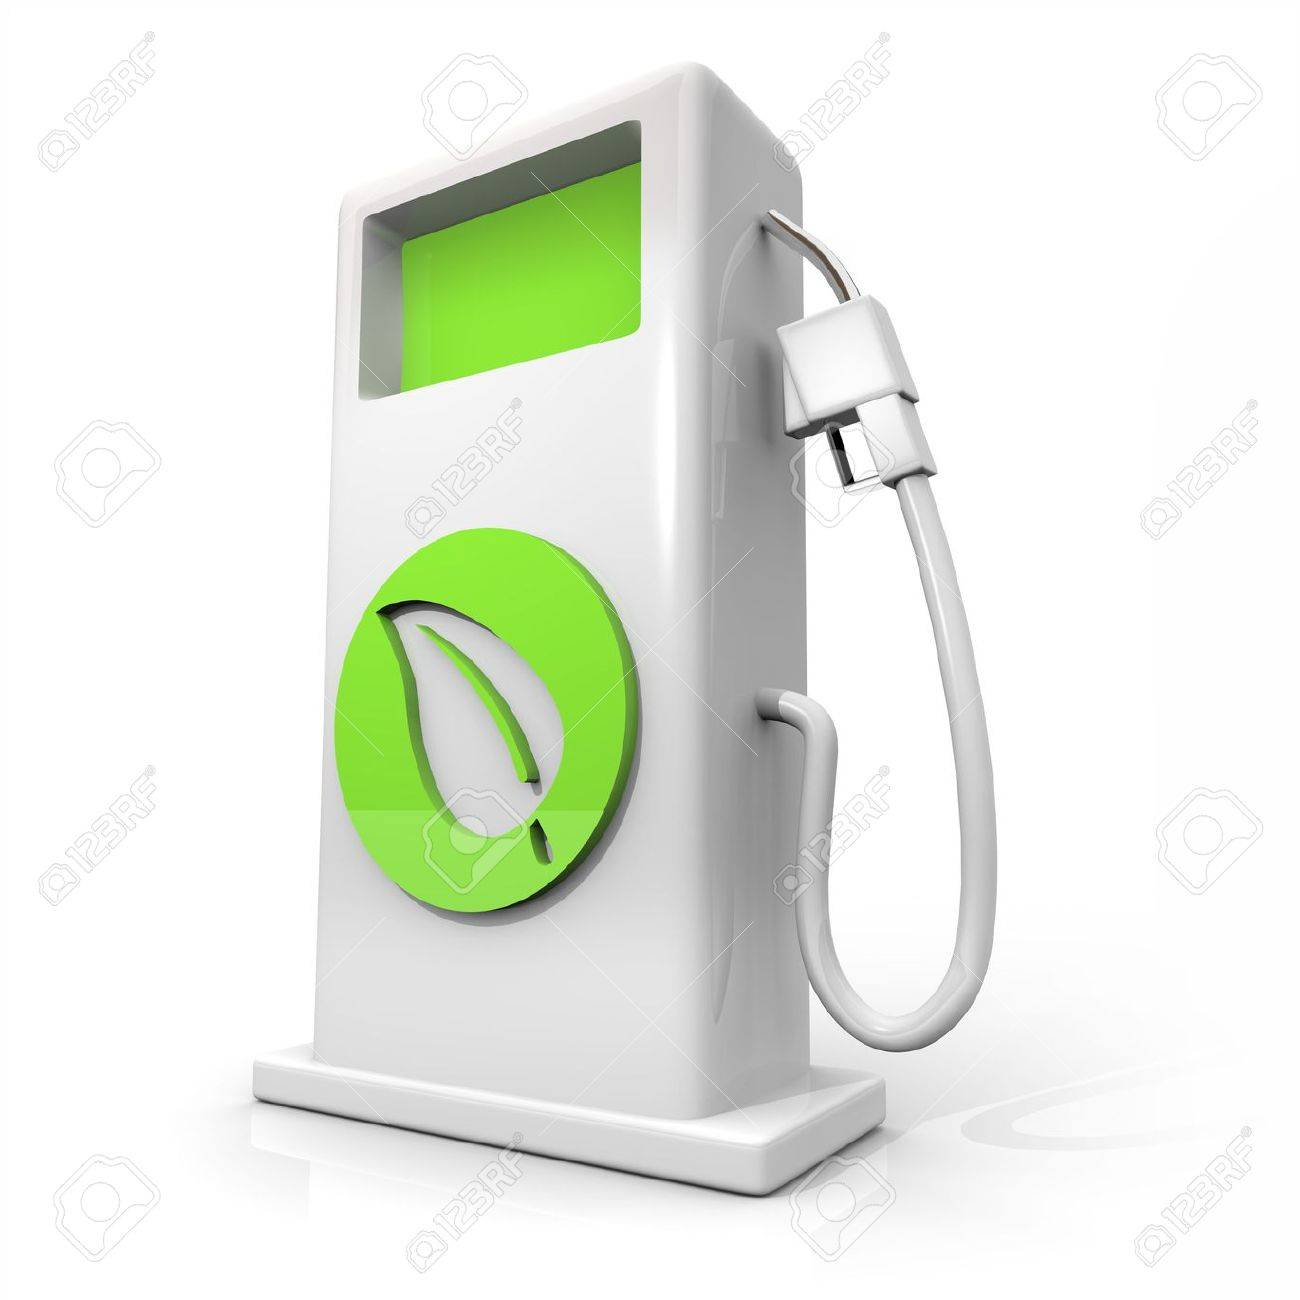 A white pump of alternative fuel with a green leaf symbol on it symbolizing earth friendliness Stock Photo - 5754867